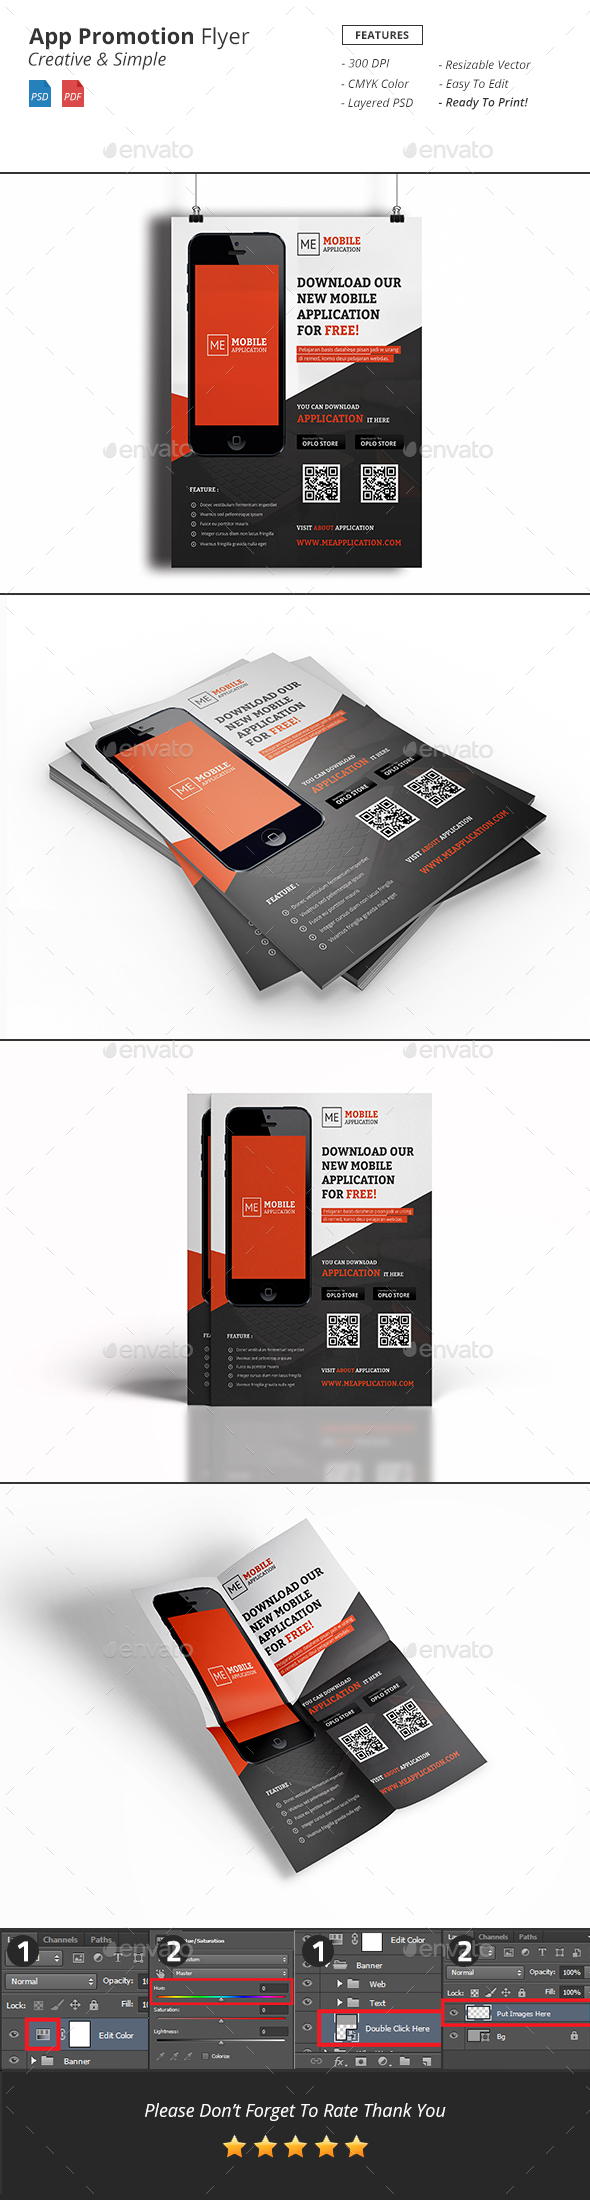 App Promotion Flyer - Corporate Flyers